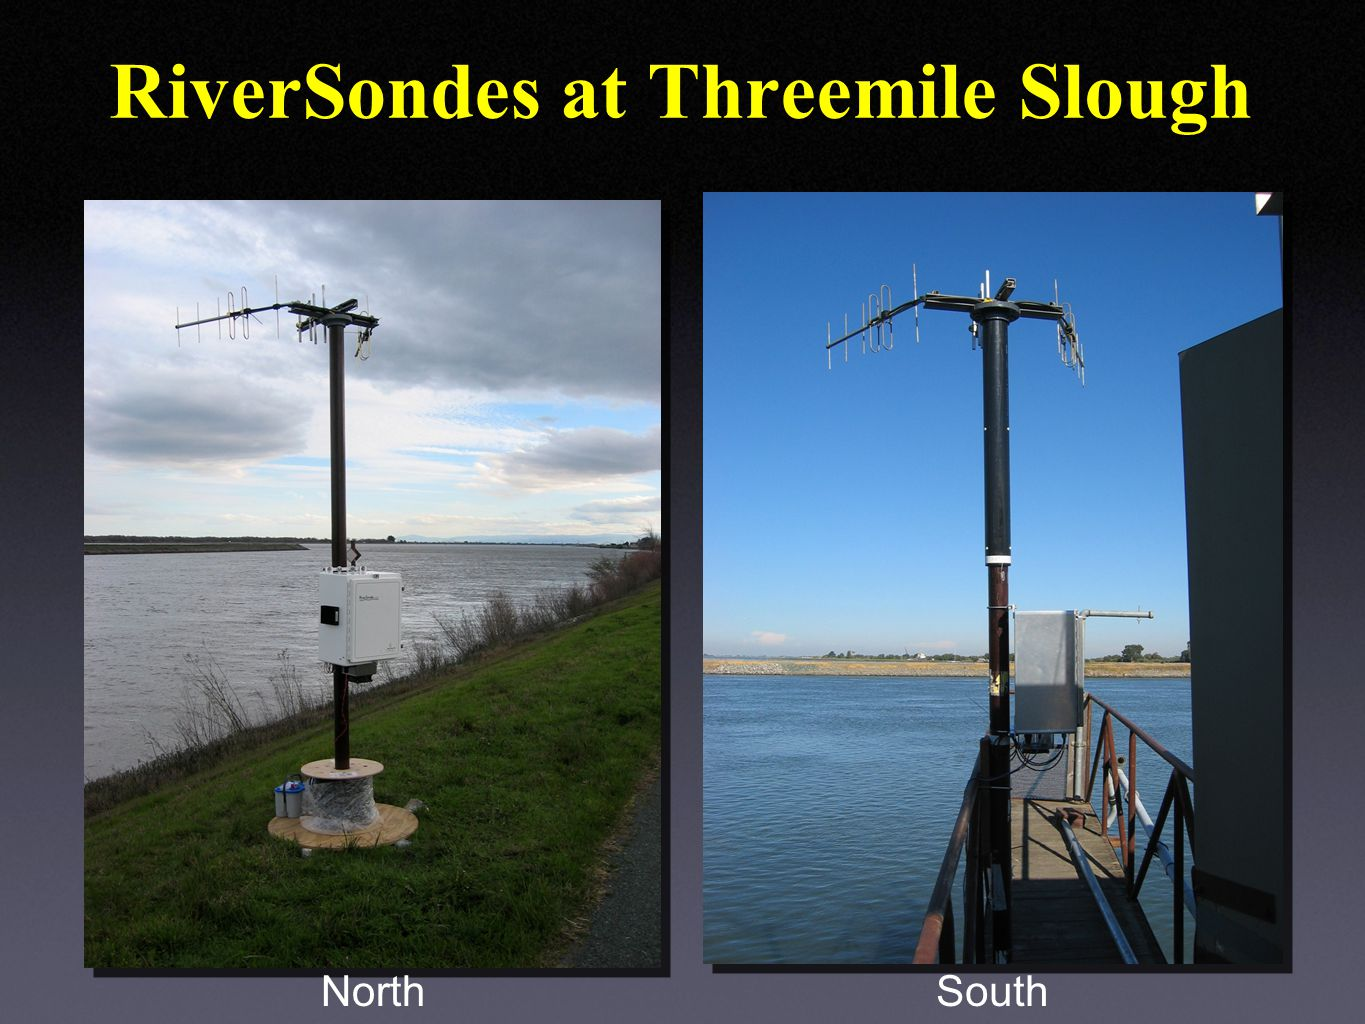 RiverSondes at Threemile Slough NorthSouth